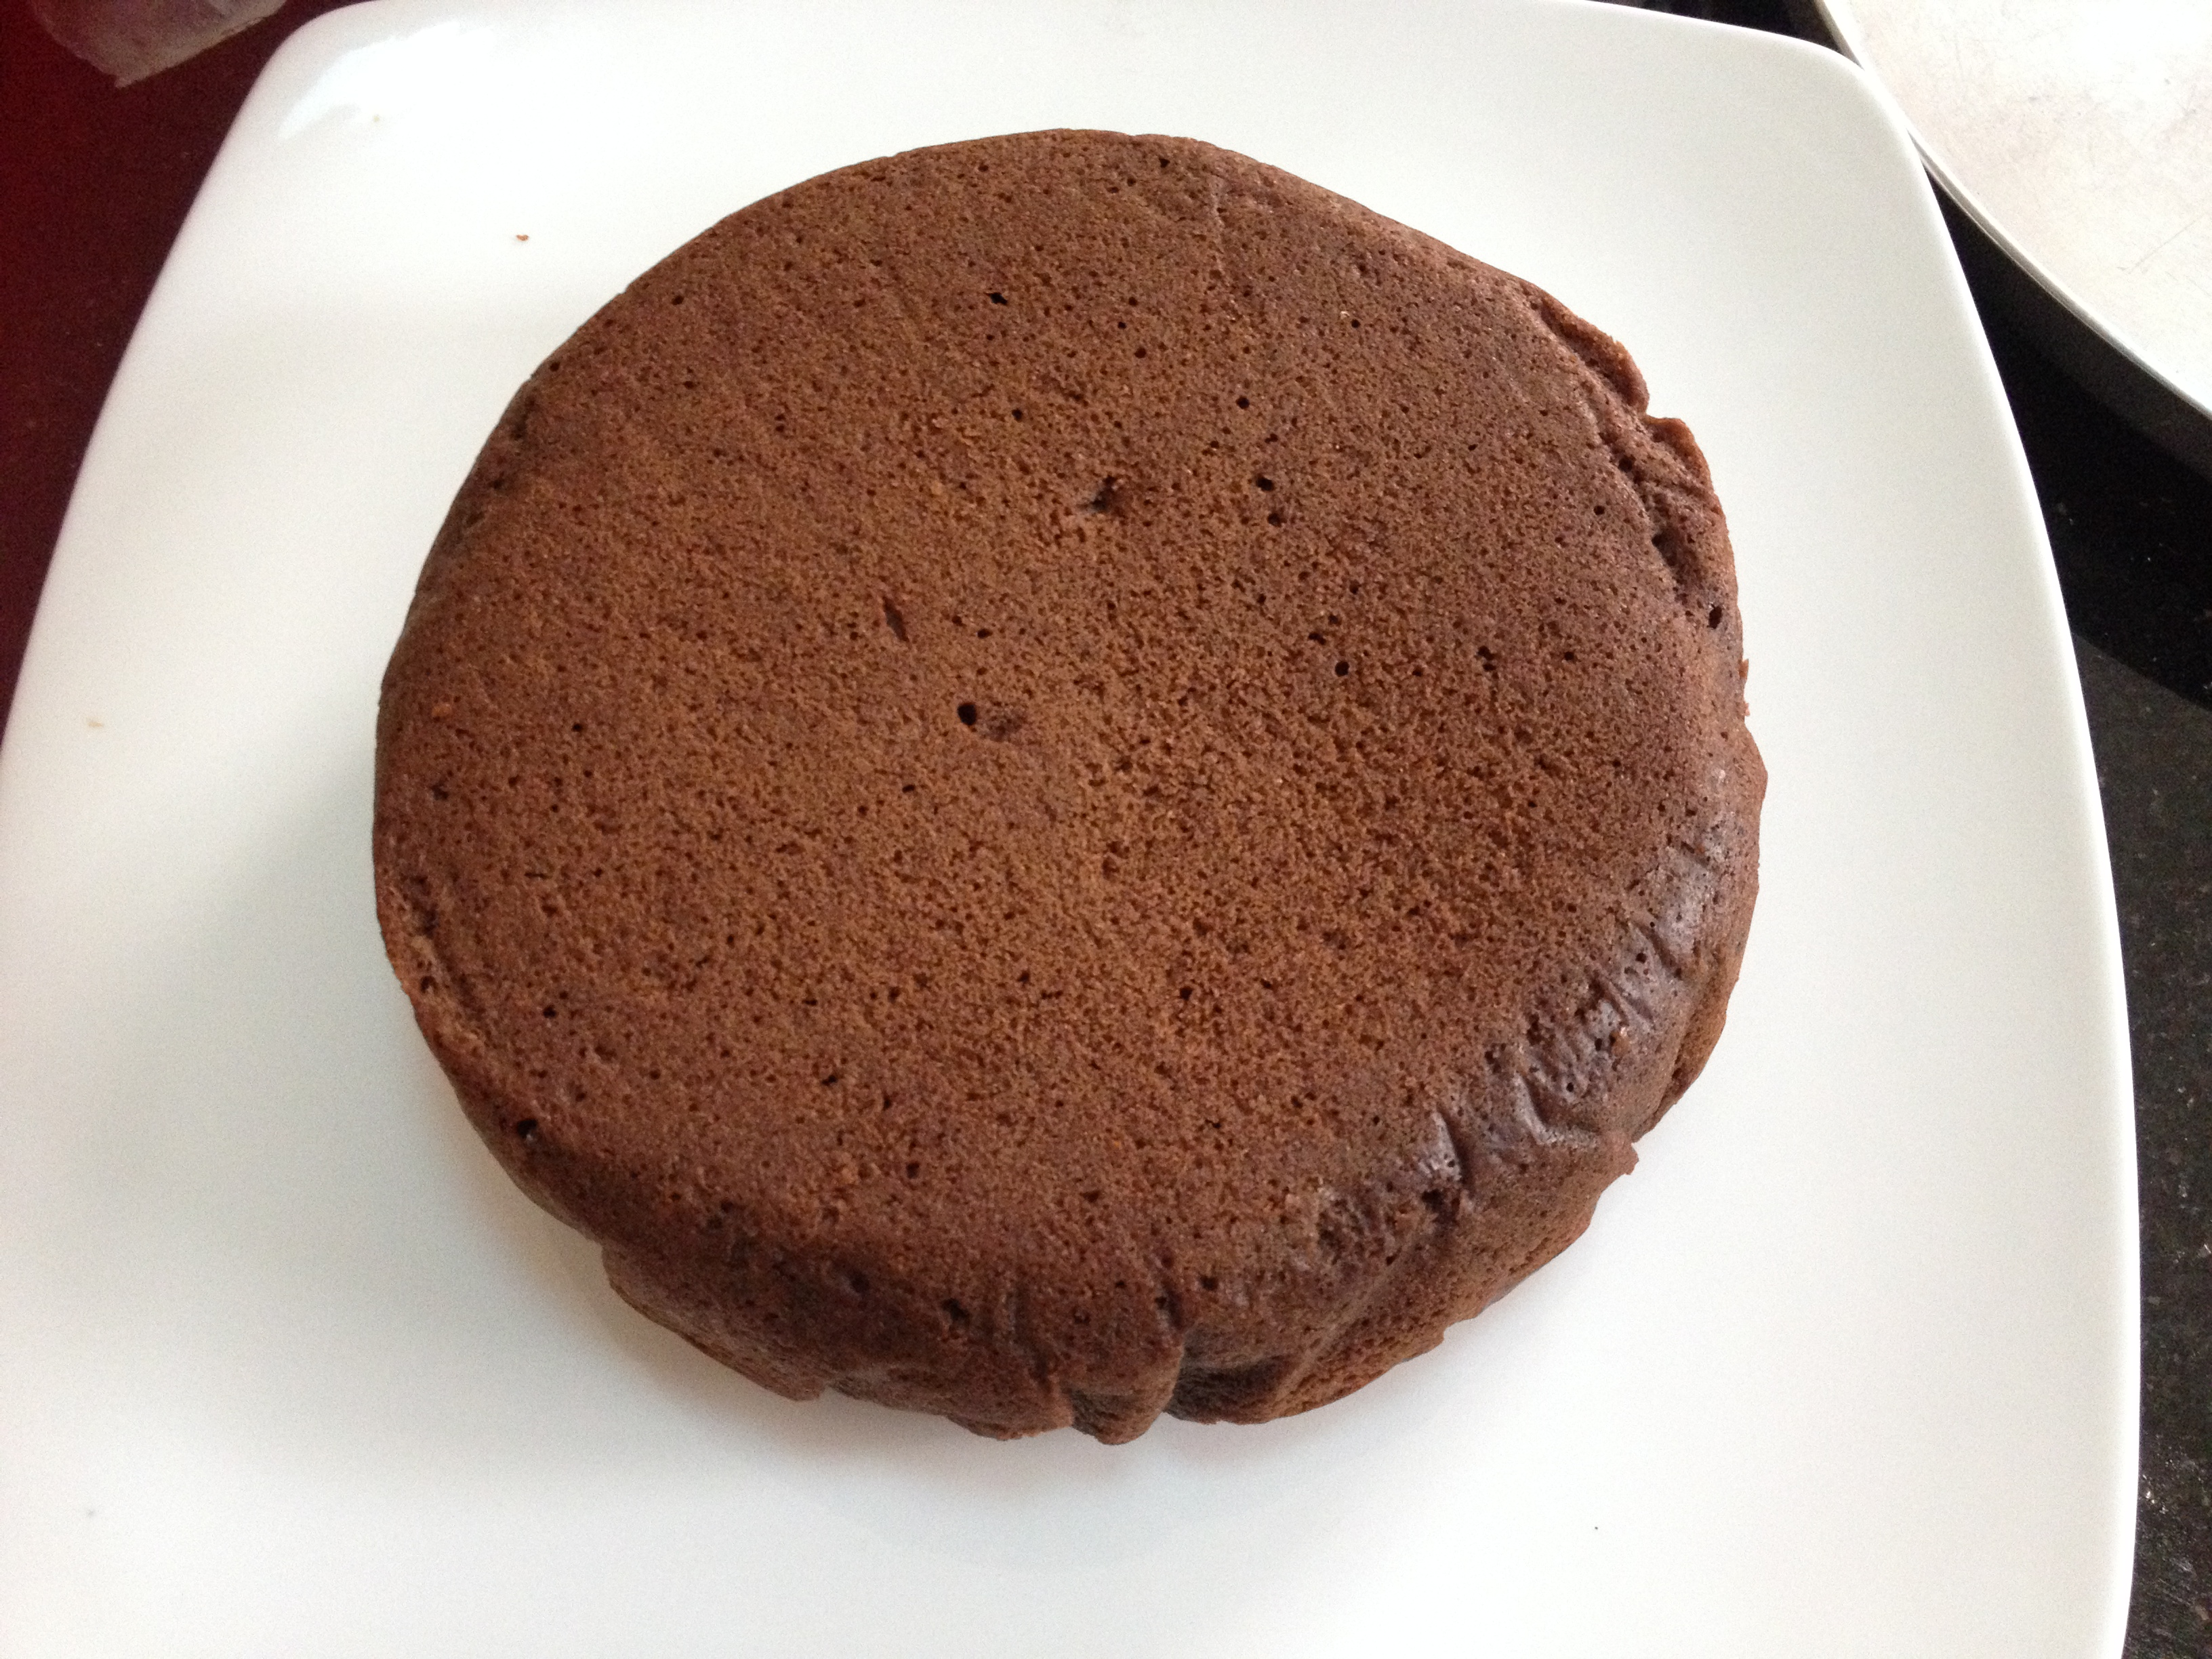 ... to make the cake with whole wheat – butterless and less sweeter too